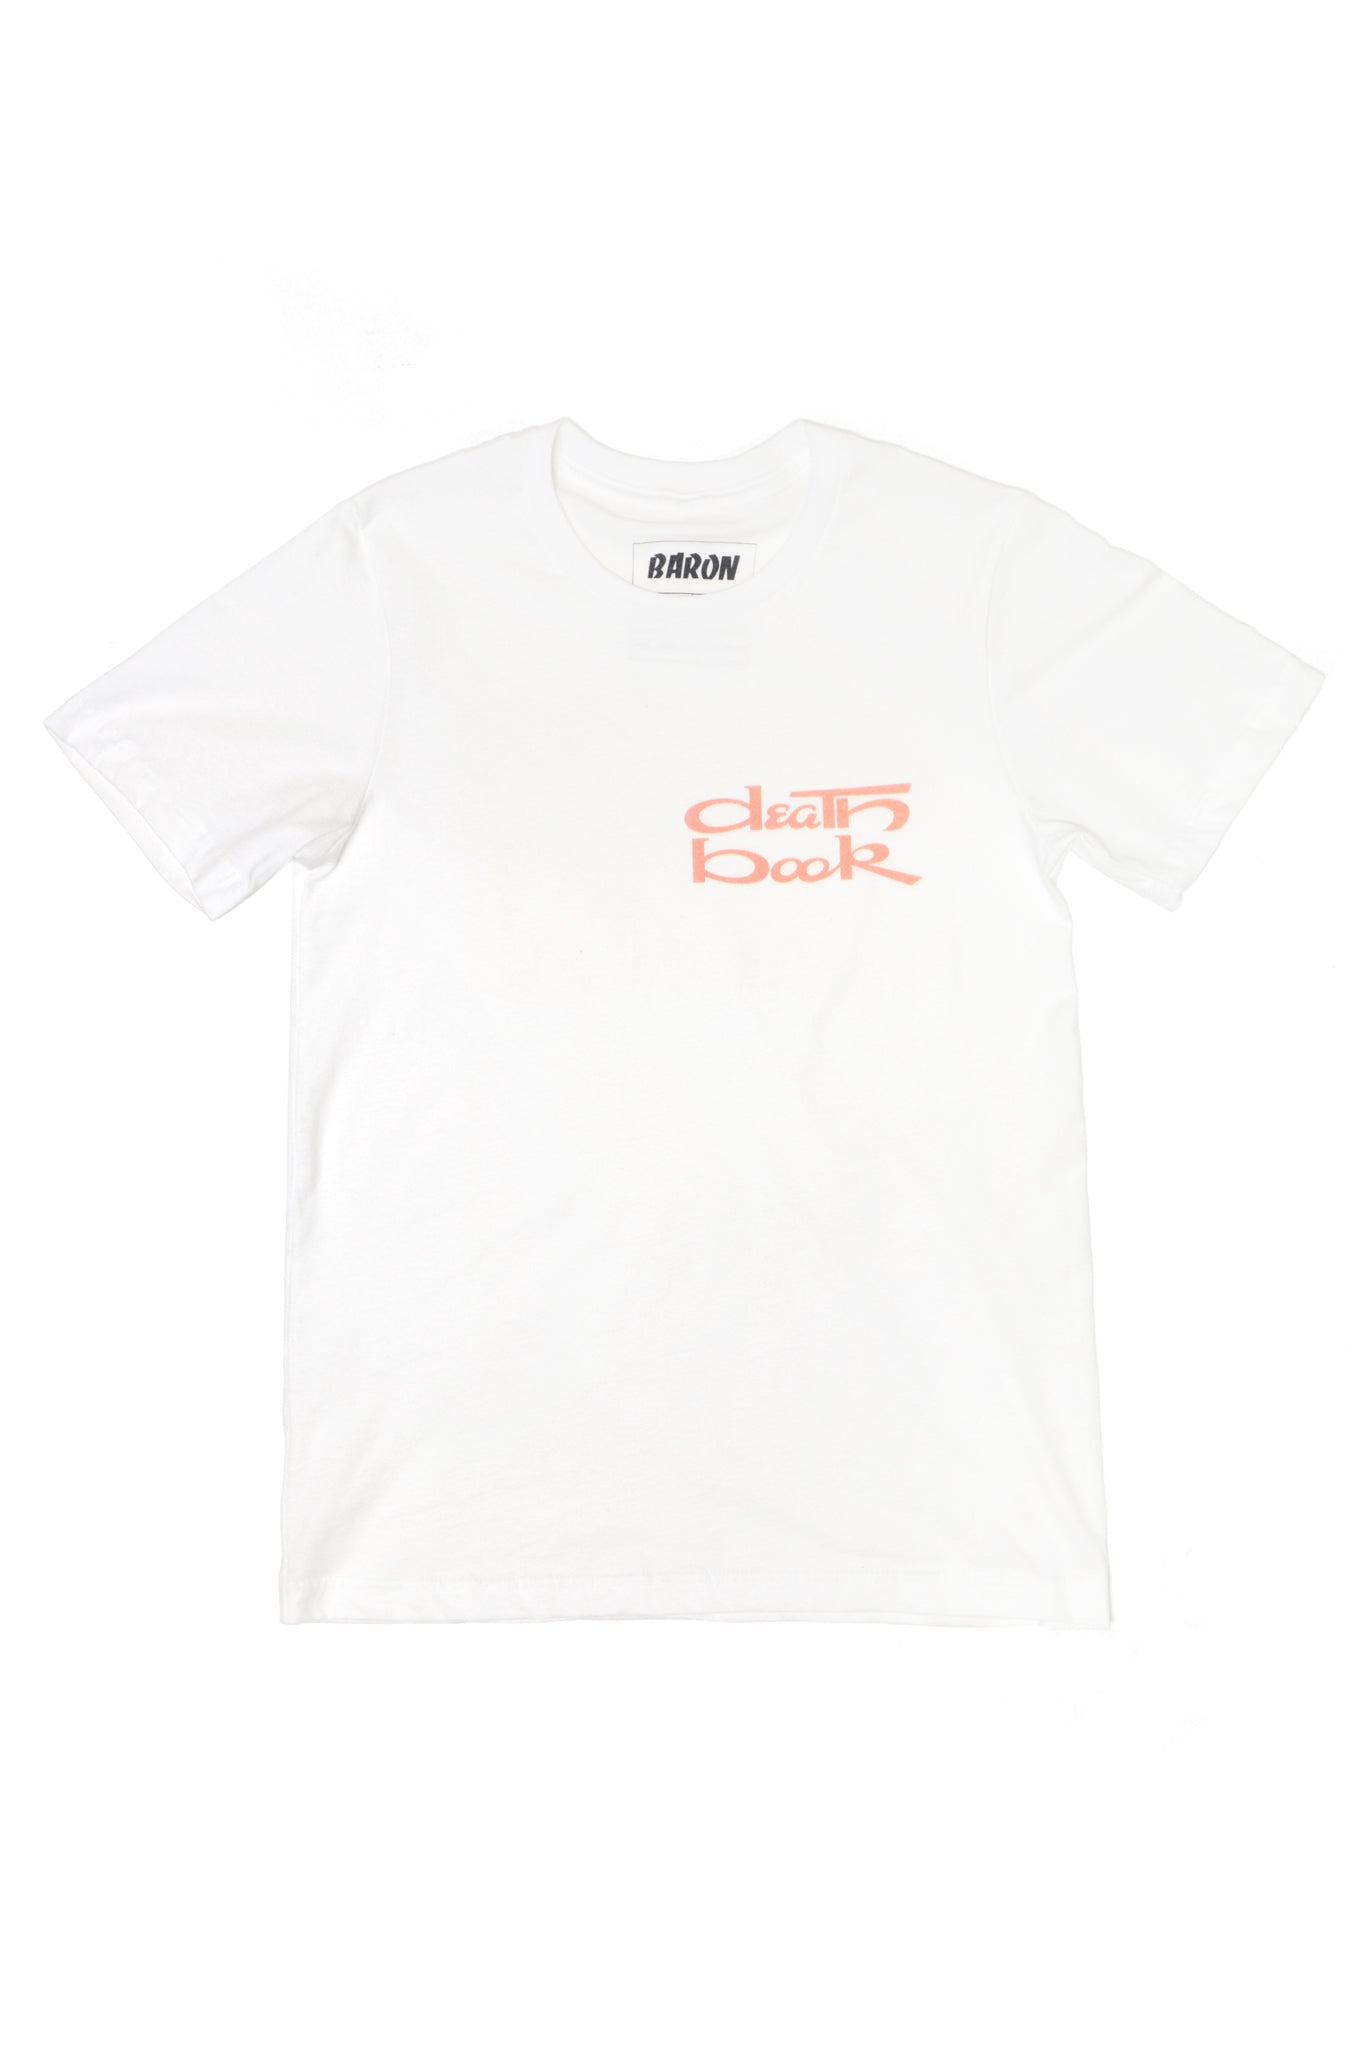 Death Book Logo Tee